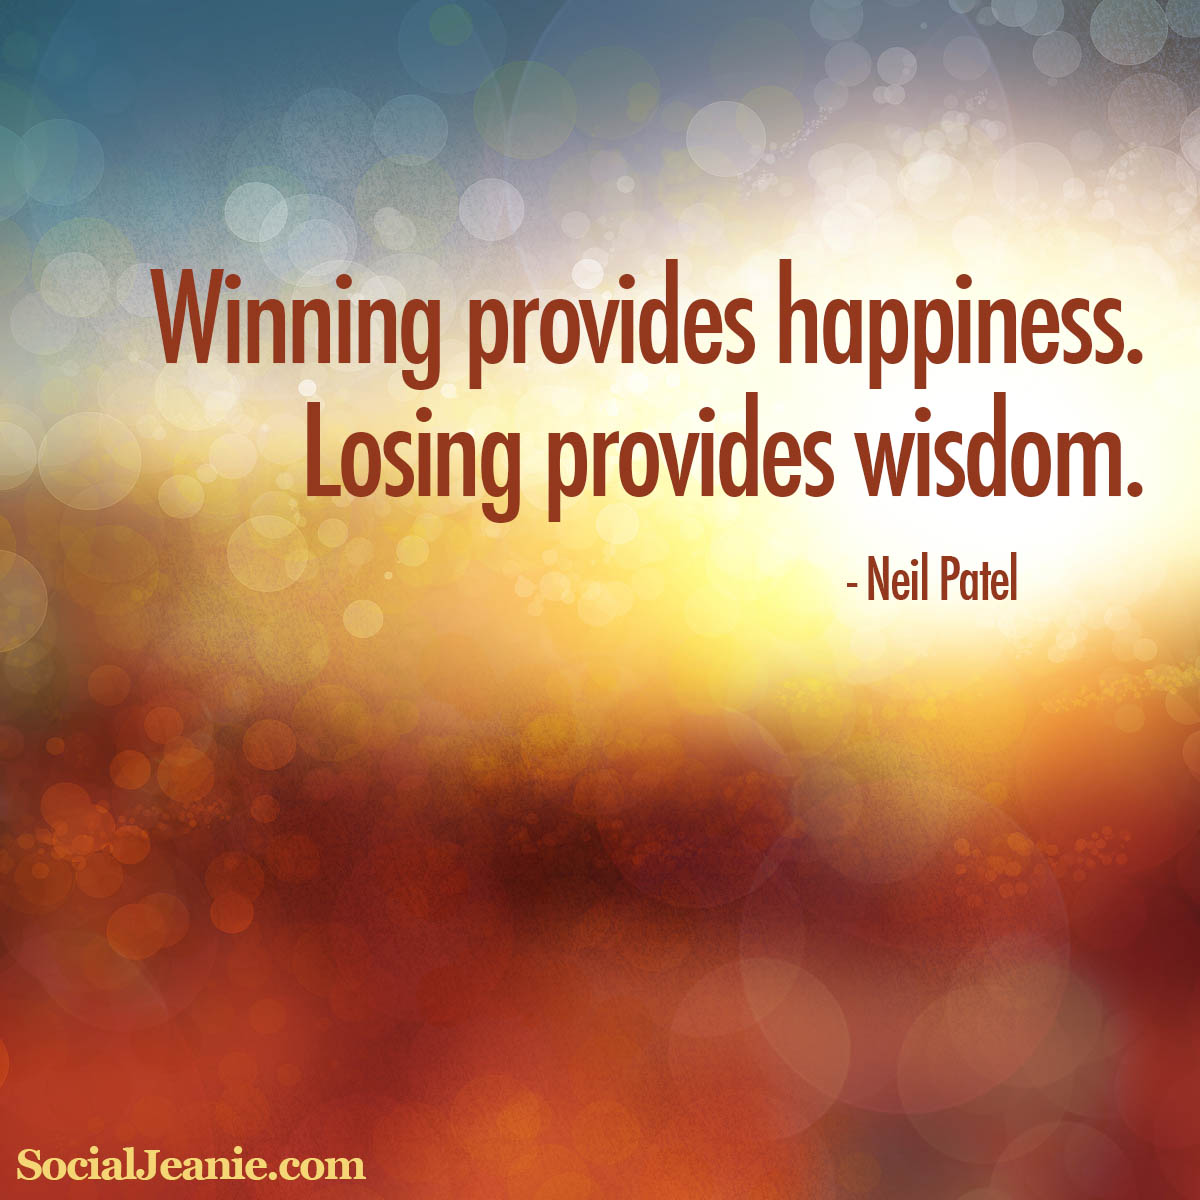 Inspirational Quotes About Happiness: Winning Provides Happiness